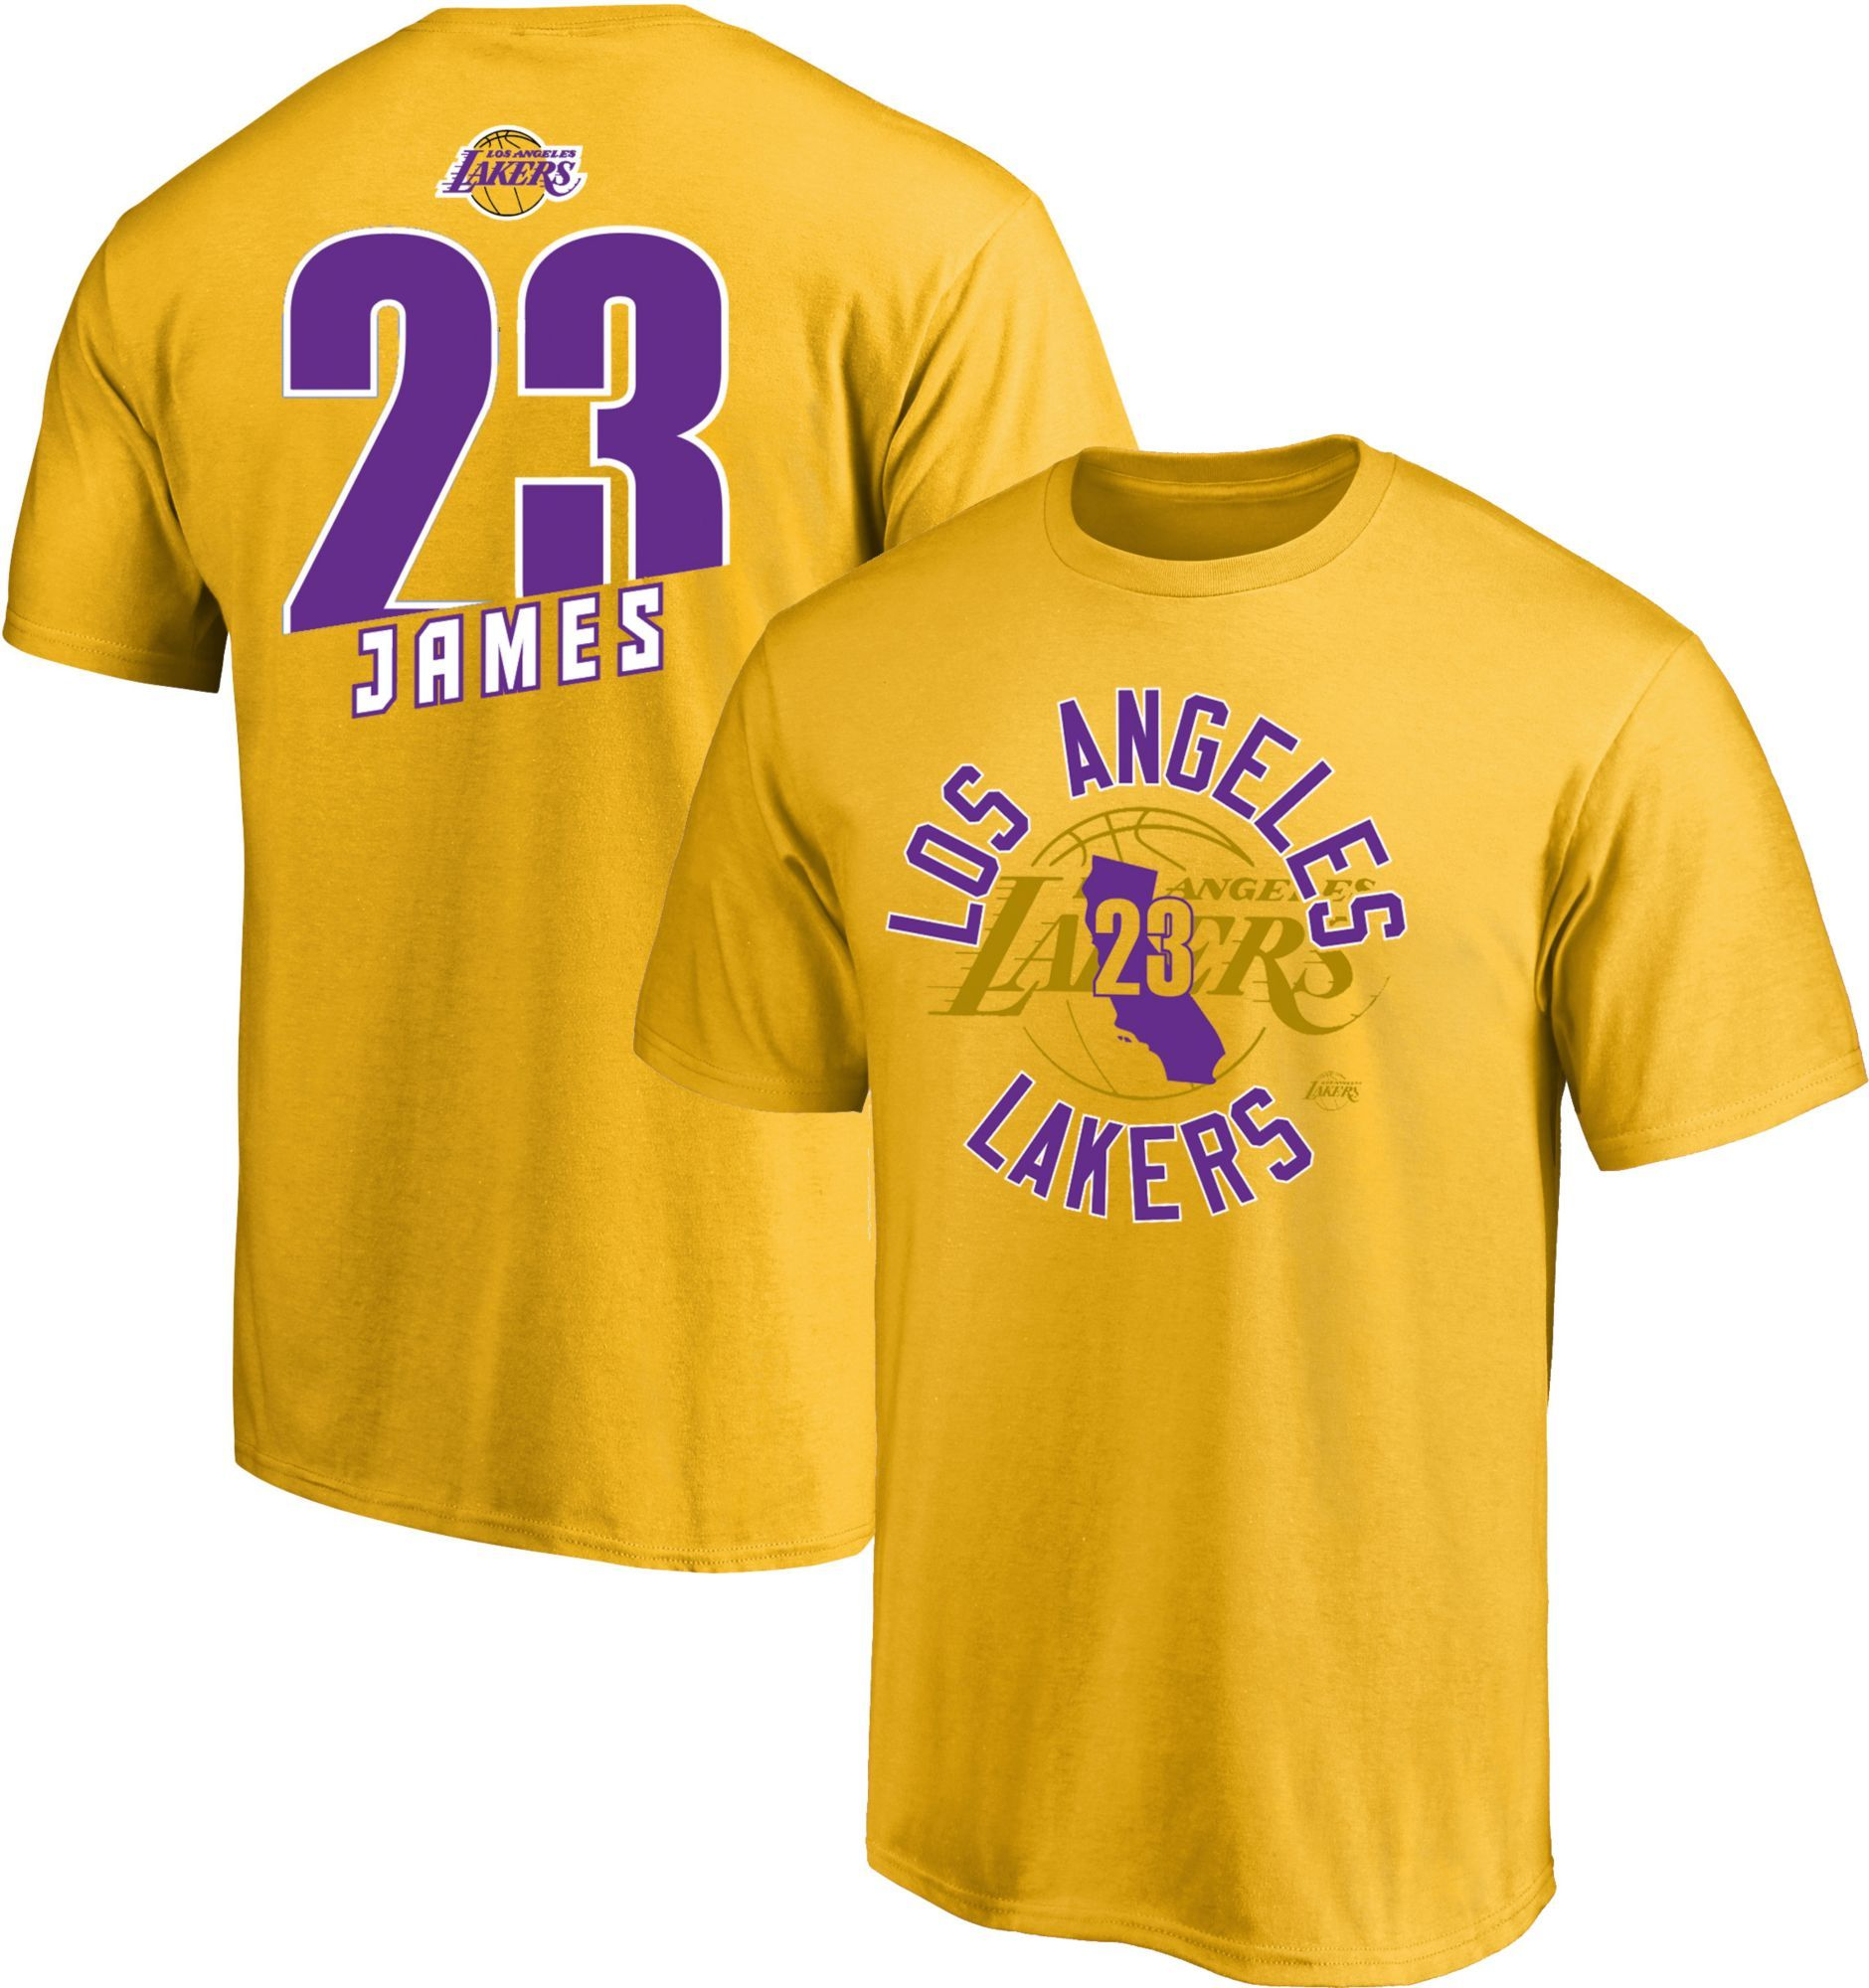 8b7142ace2d Majestic Men s Los Angeles Lakers LeBron James  23 Gold T-Shirt ...